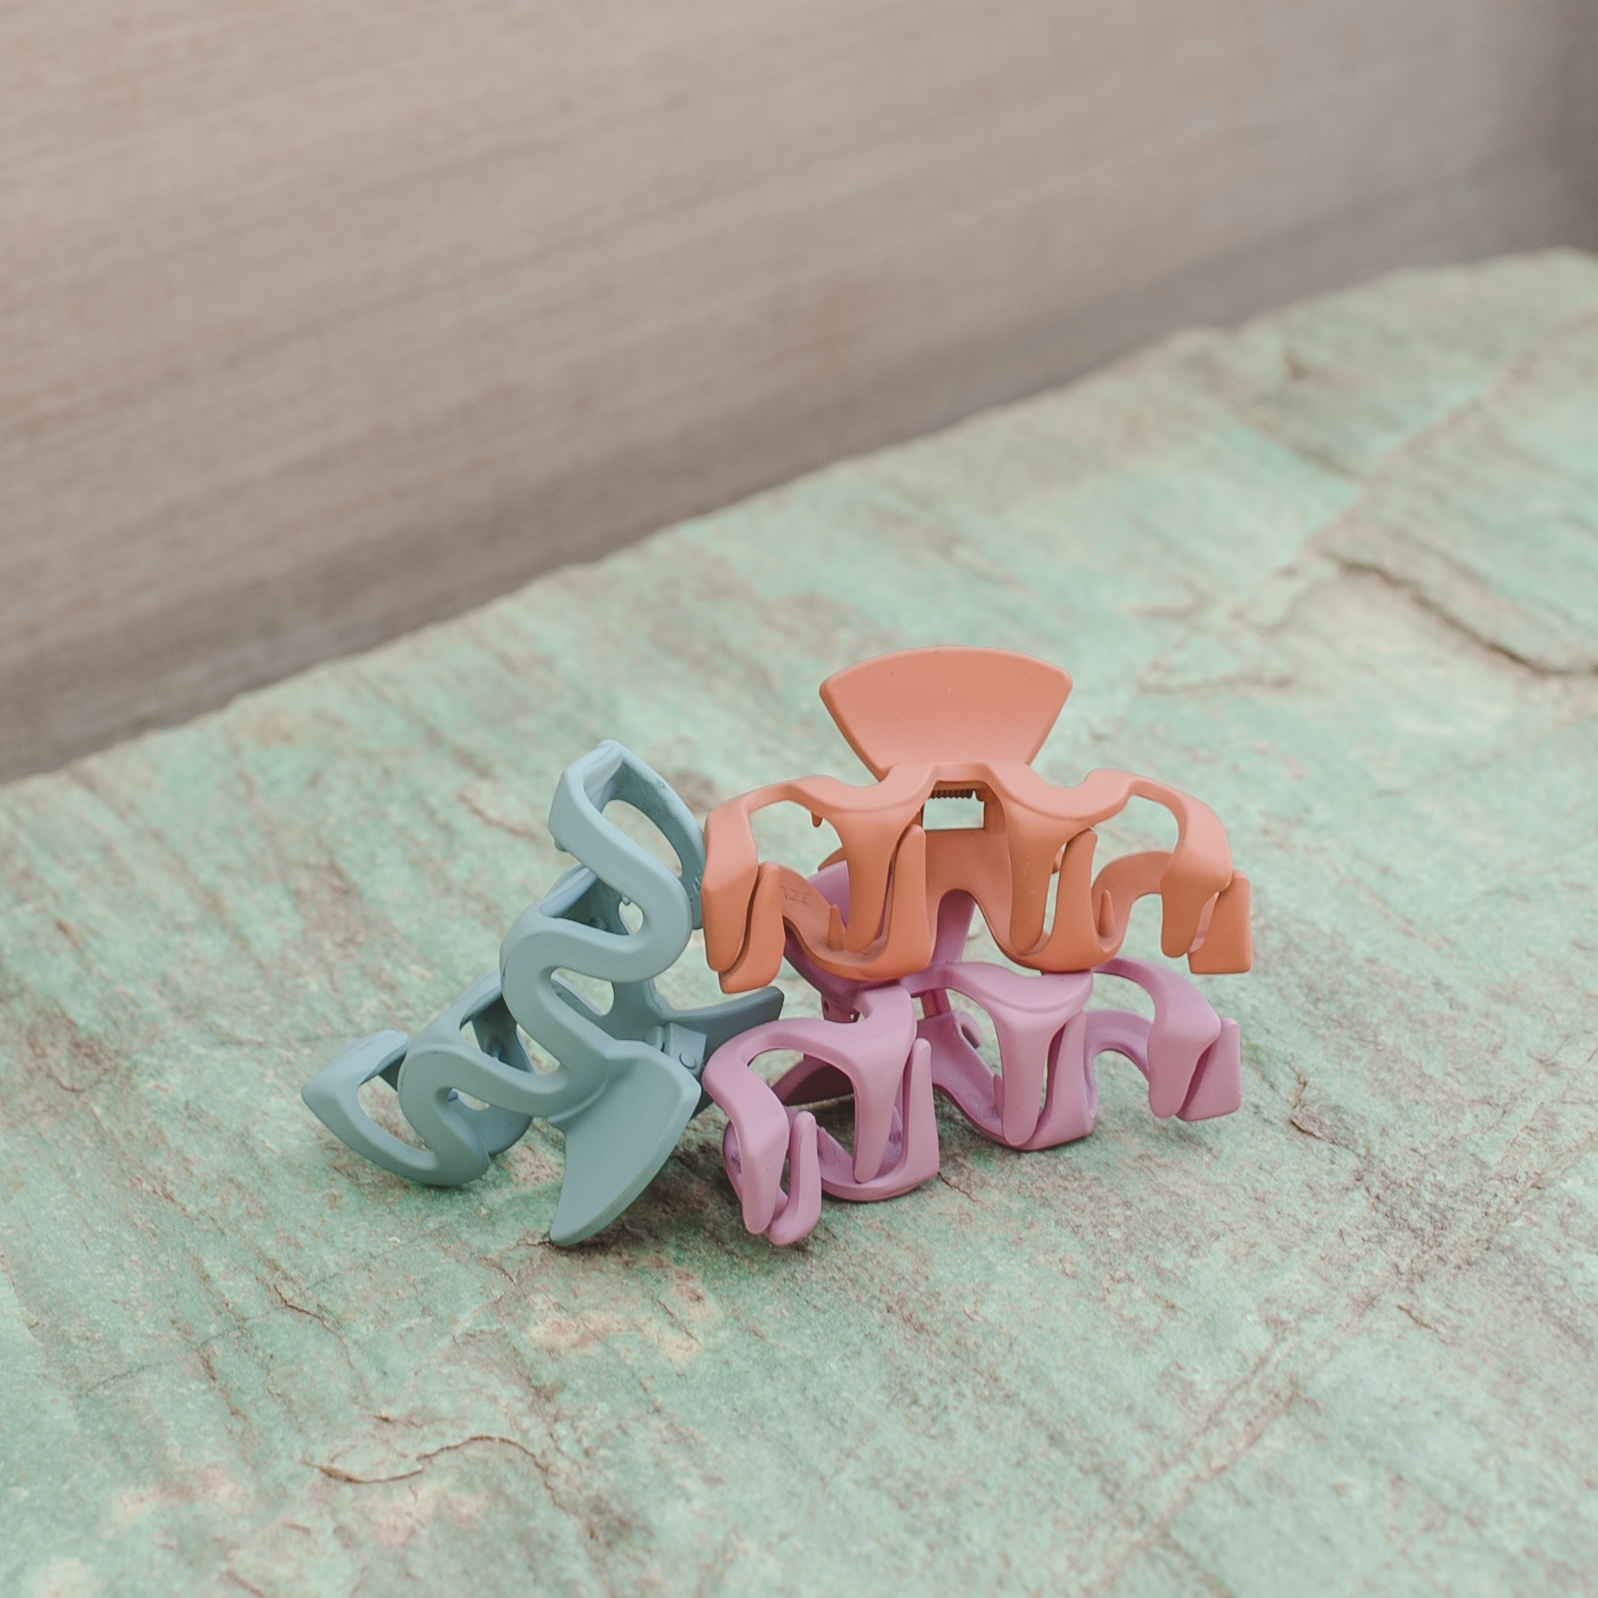 Wholesale accessories like 90's hair clips are currently rising in popularity.